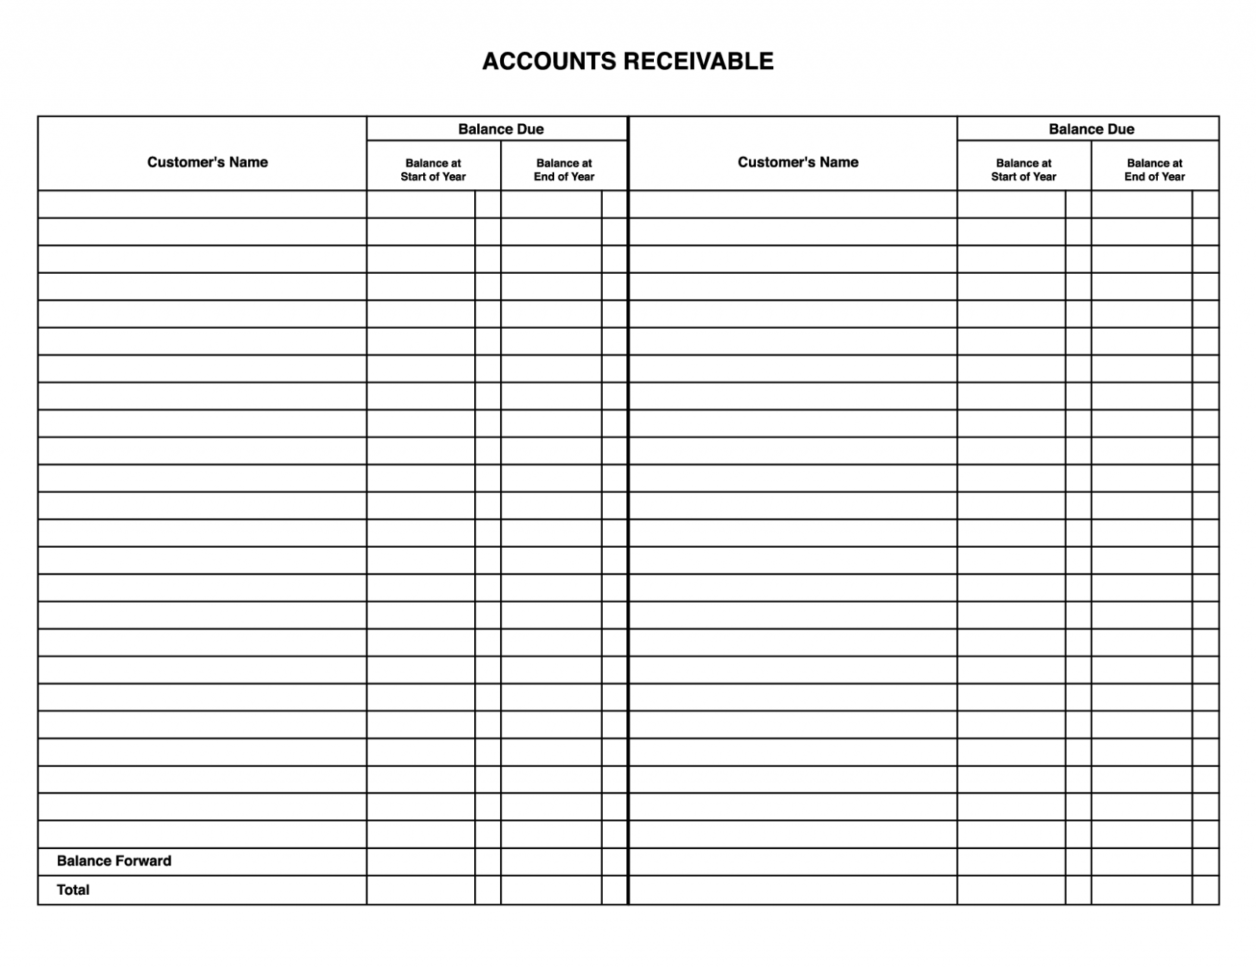 Accounts Receivable Spreadsheet Template Inside Free Accounting Spreadsheet Templates Excel Uk Income And Expense